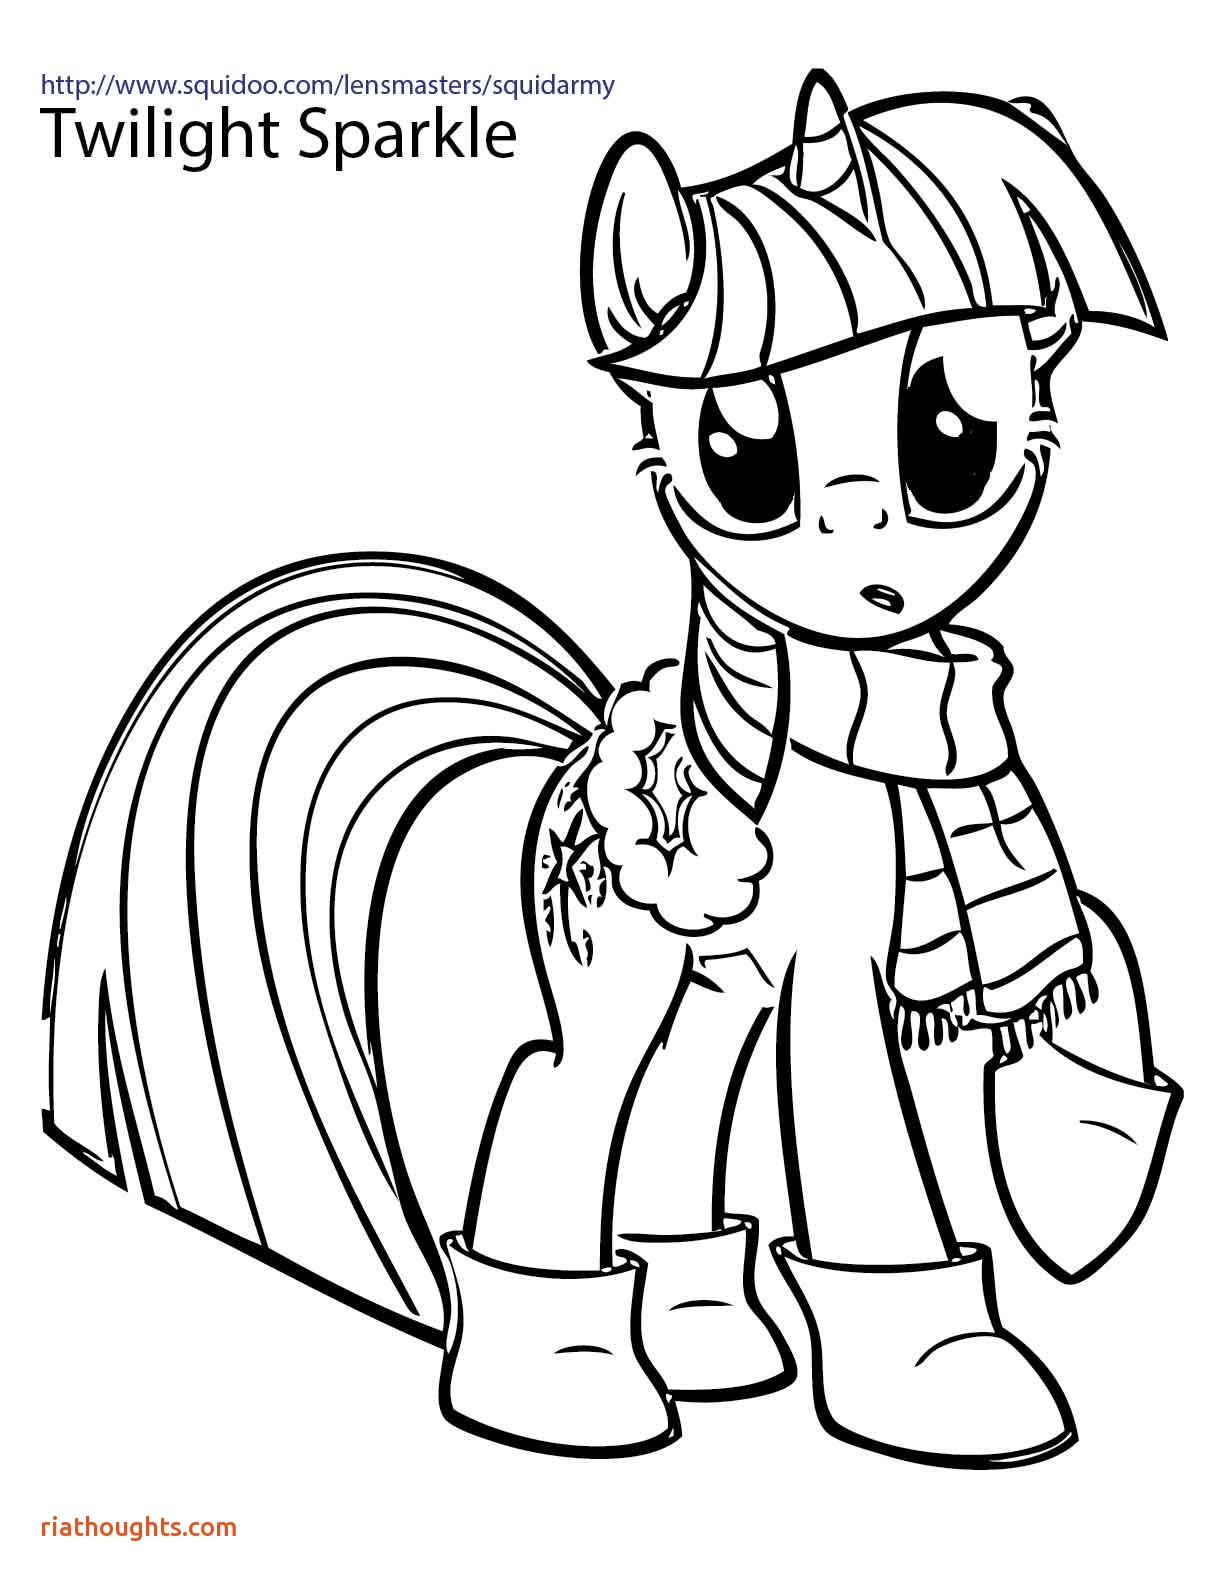 Twilight Sparkle Coloring Pages To Print